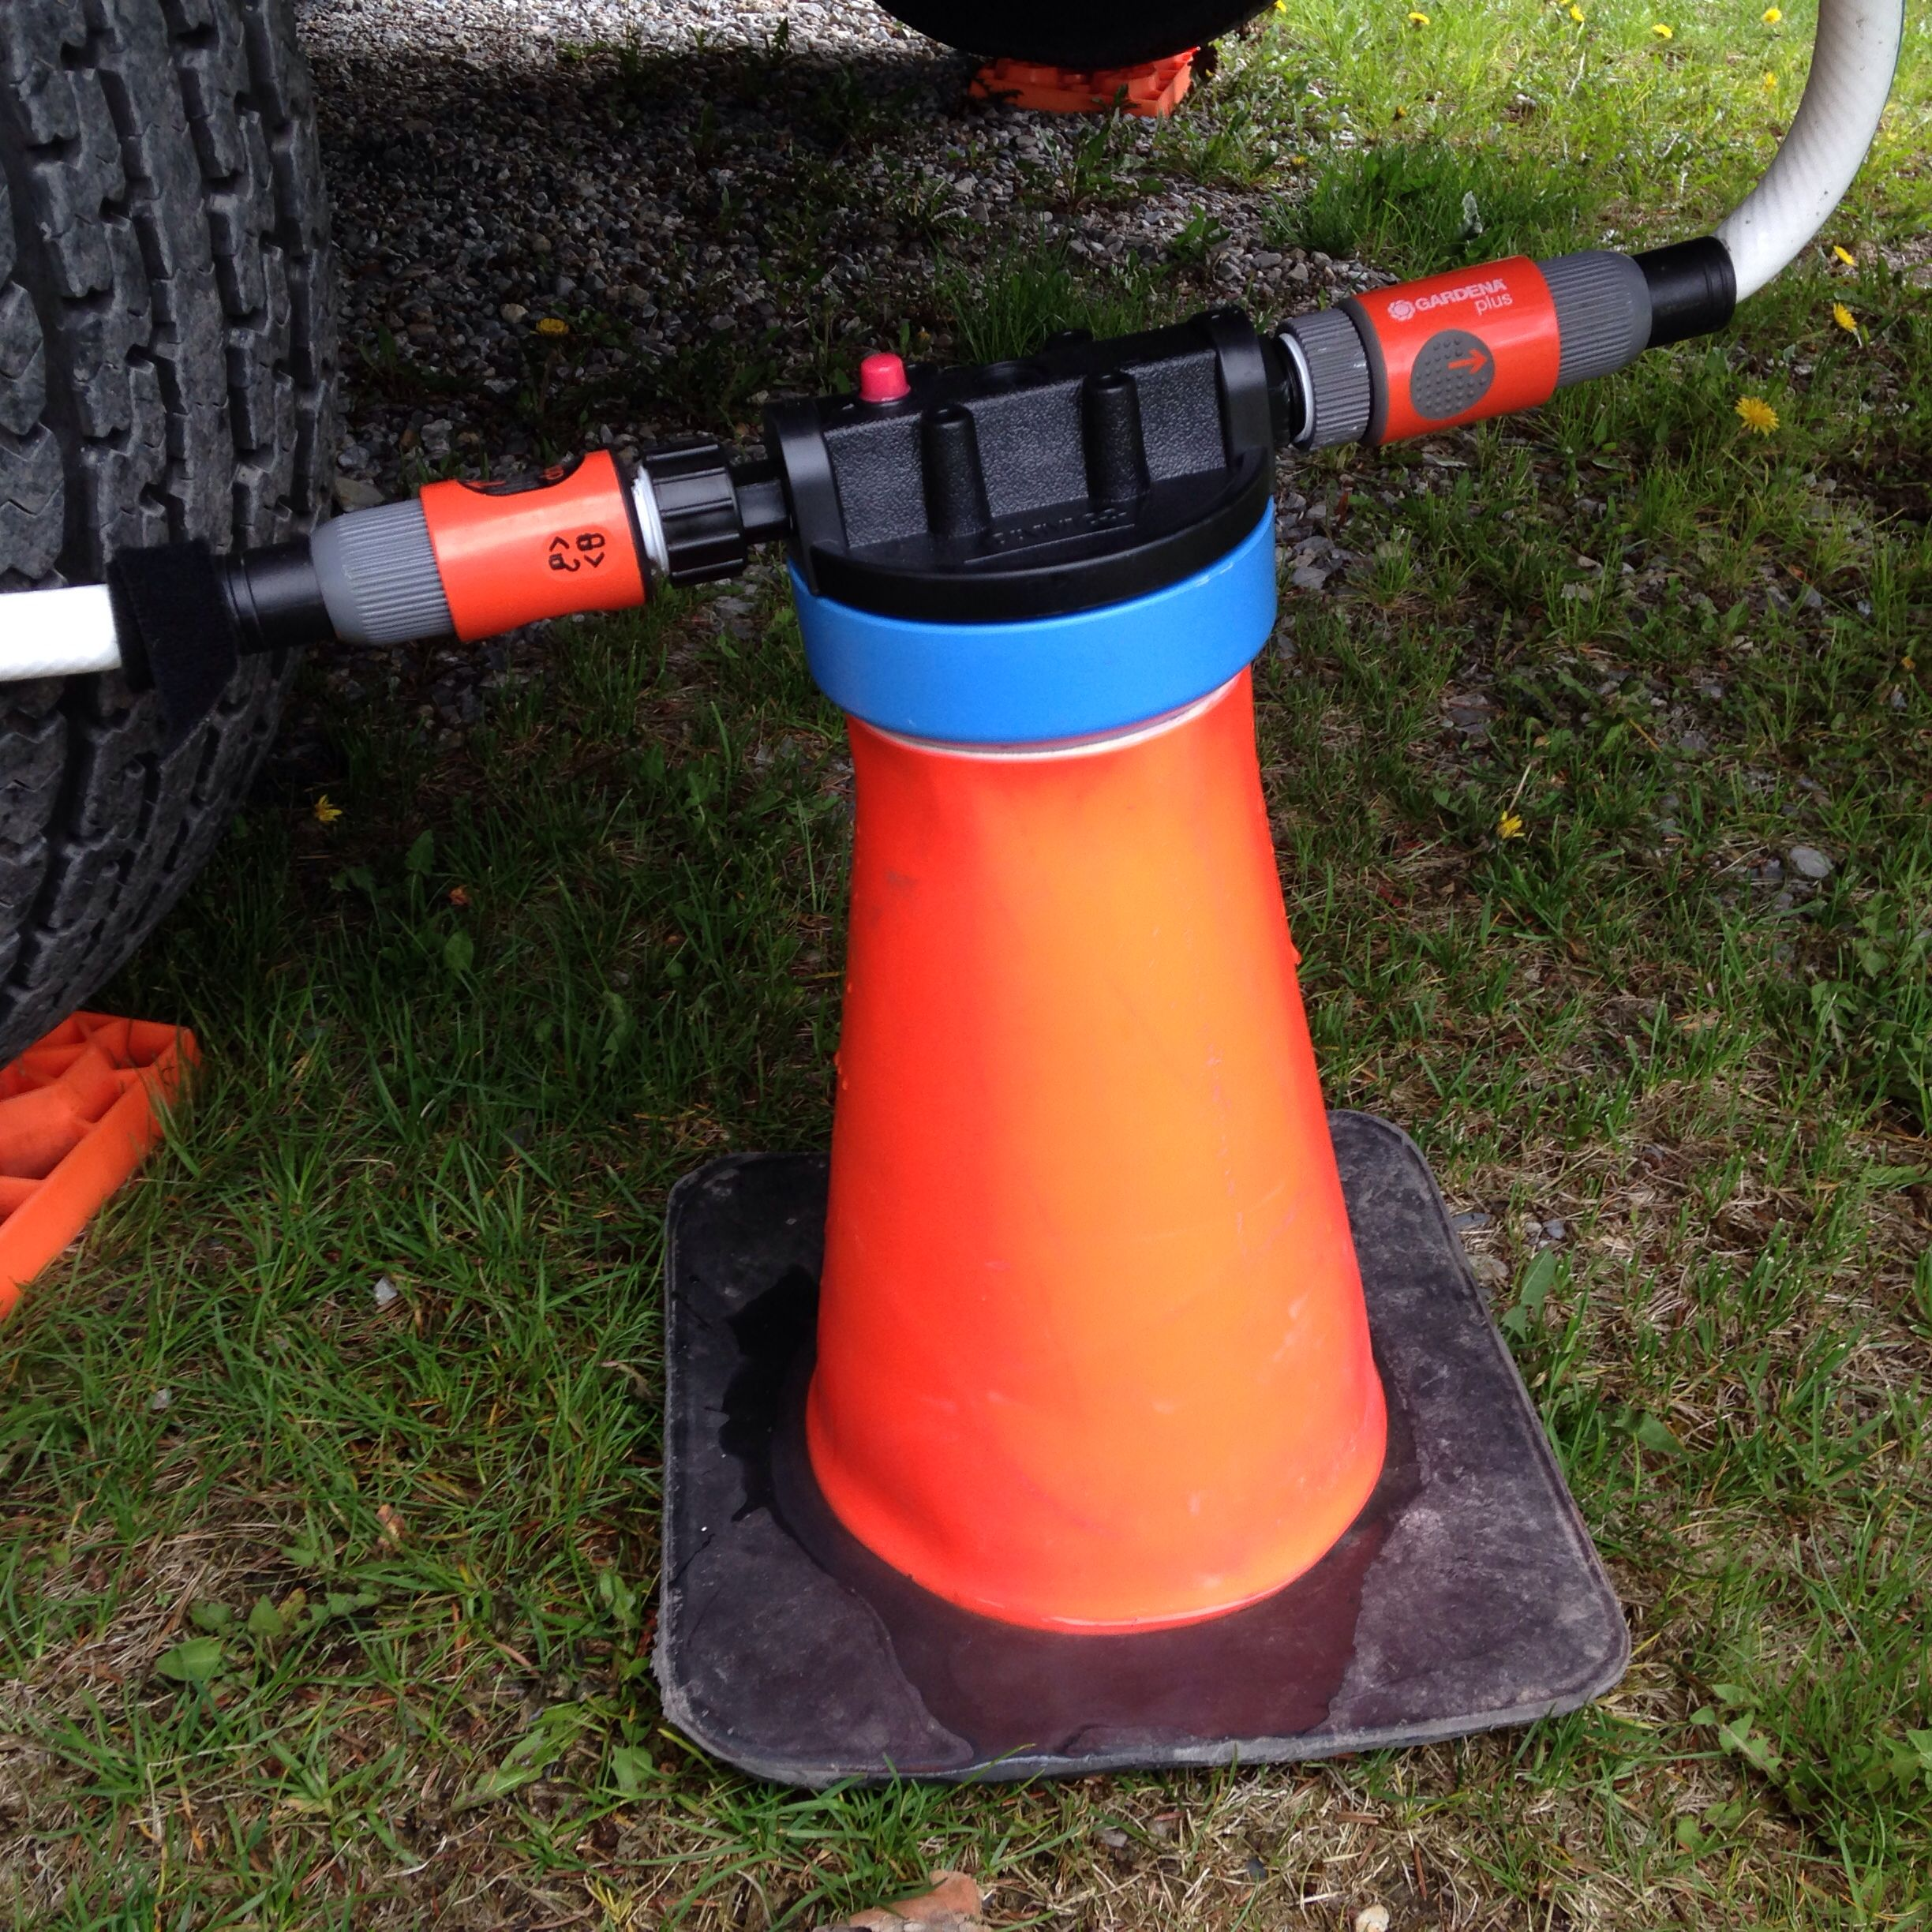 Make a stand for a canister style water filter by cutting a portion